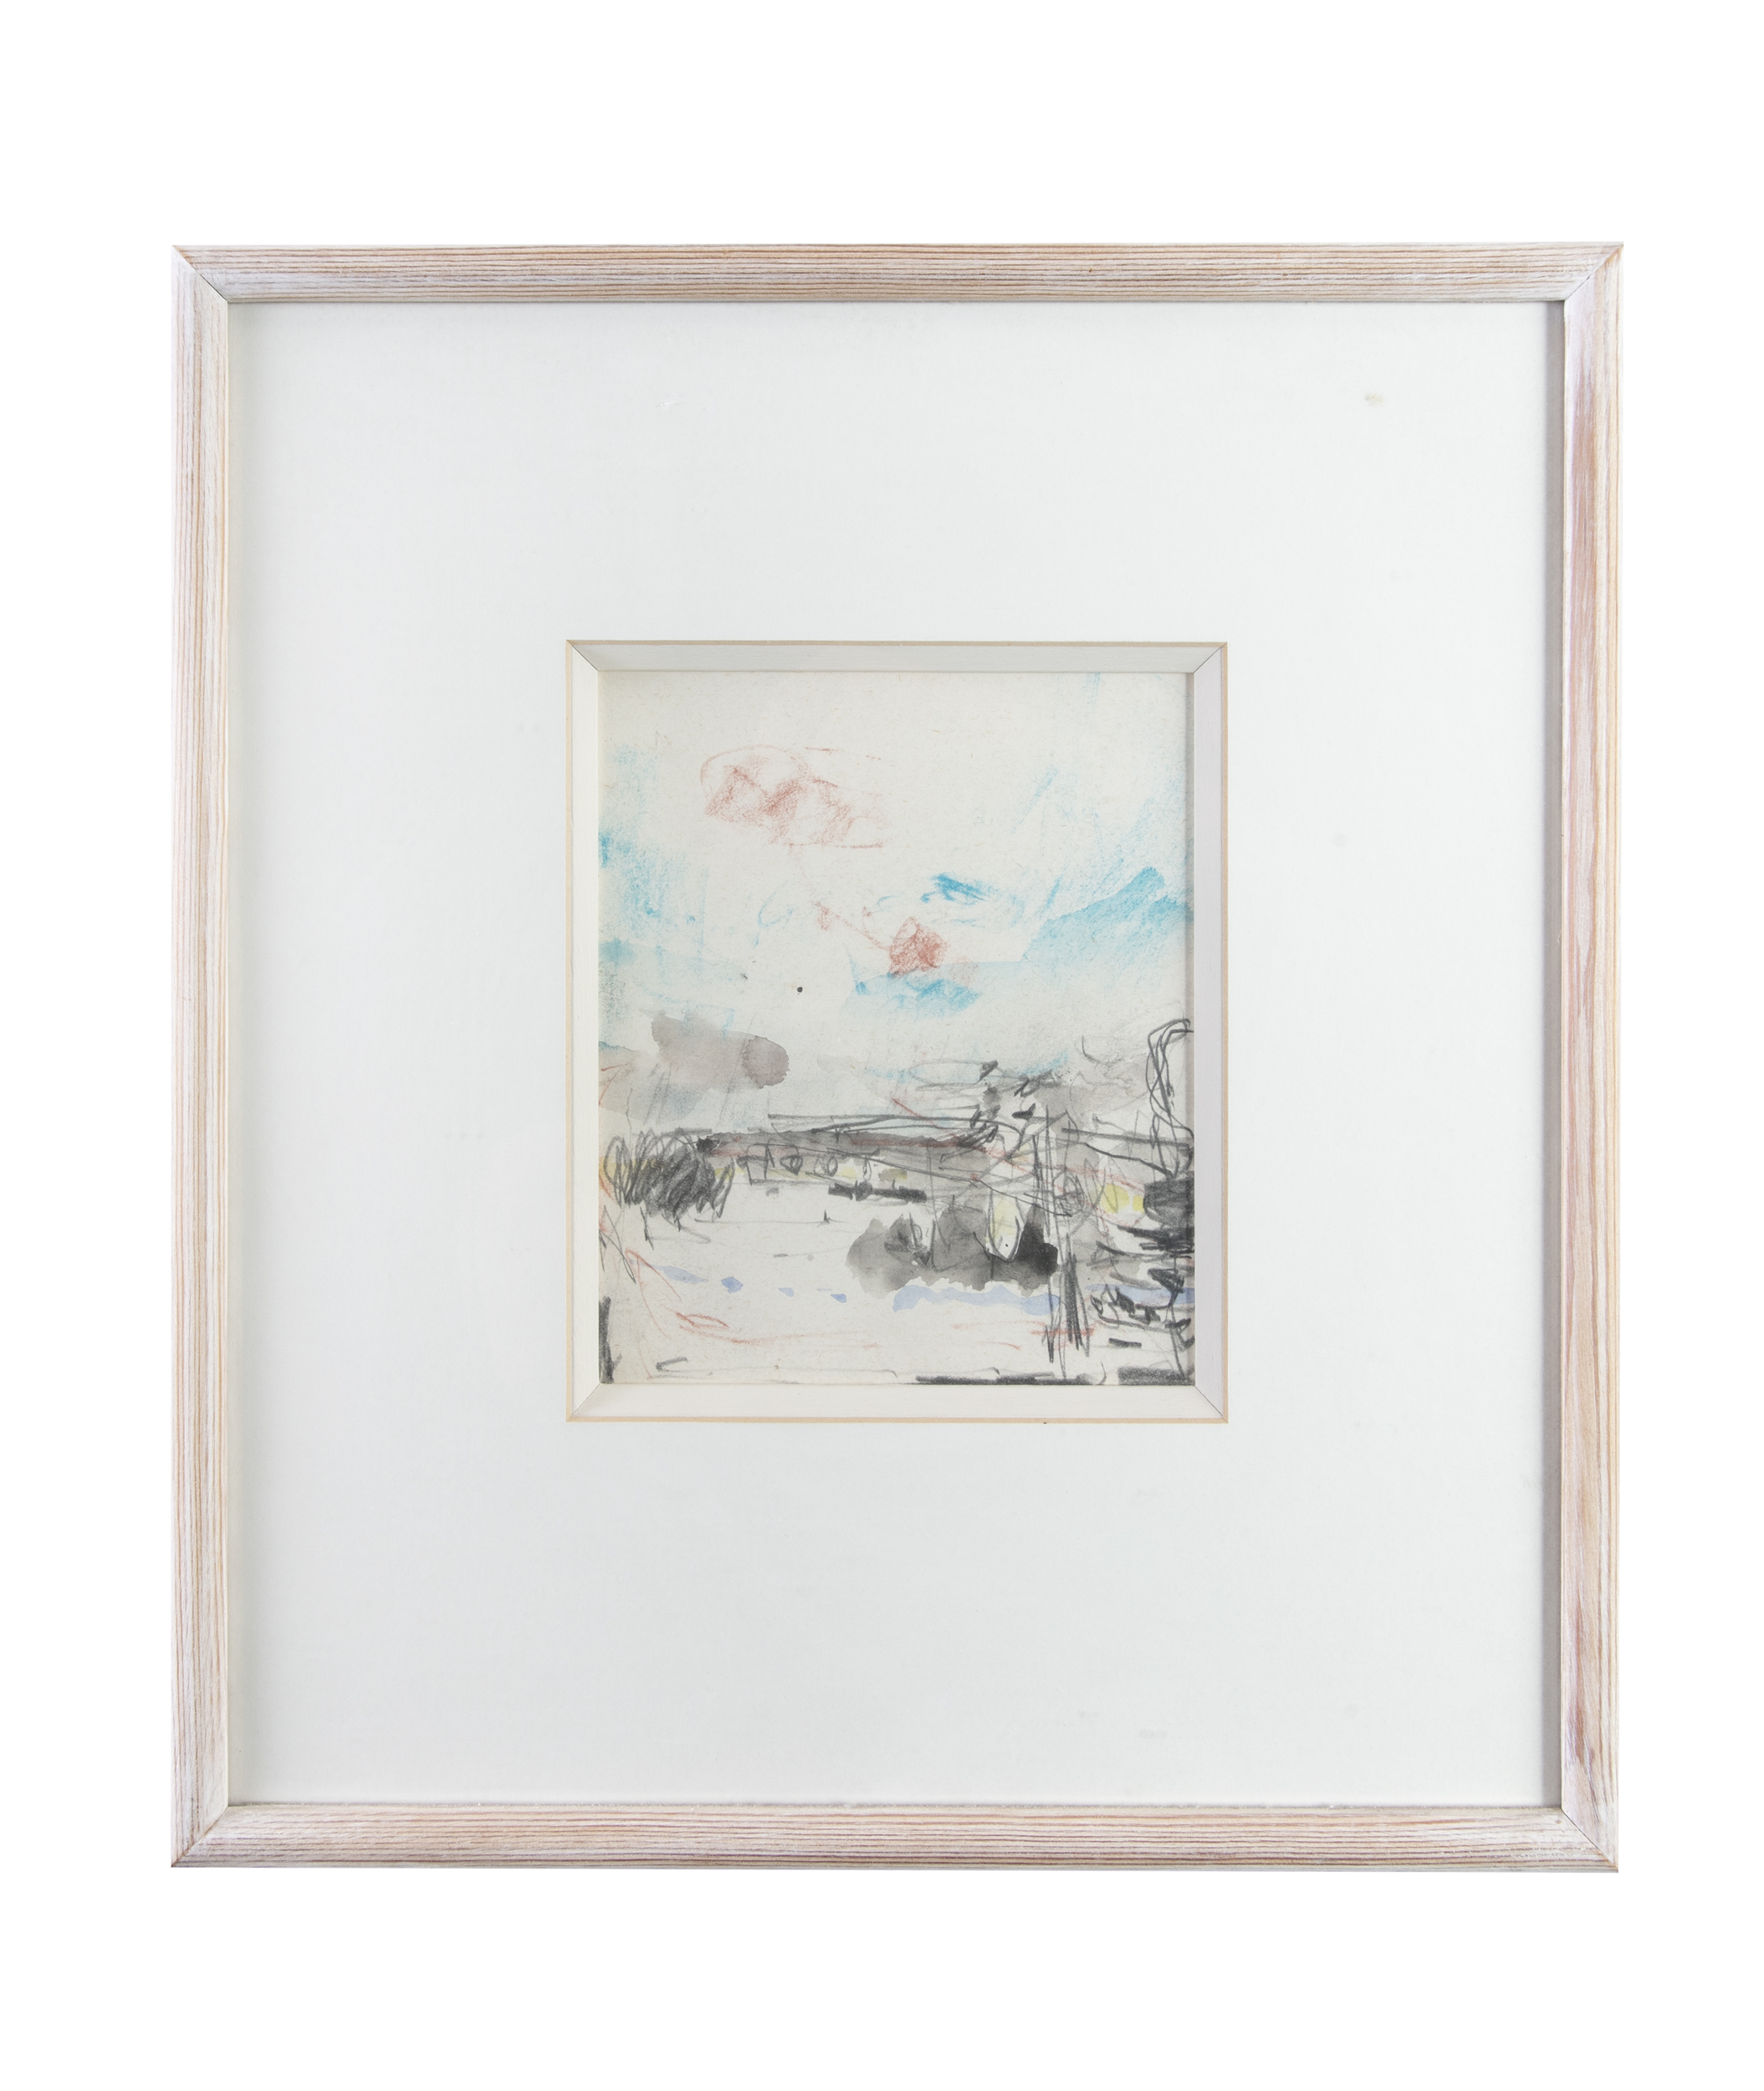 Lot 80 - Basil Blackshaw HRHA RUA (1932-2016)The River FieldMixed media on paper, 18 x 15cm (7 x 6)Signed,